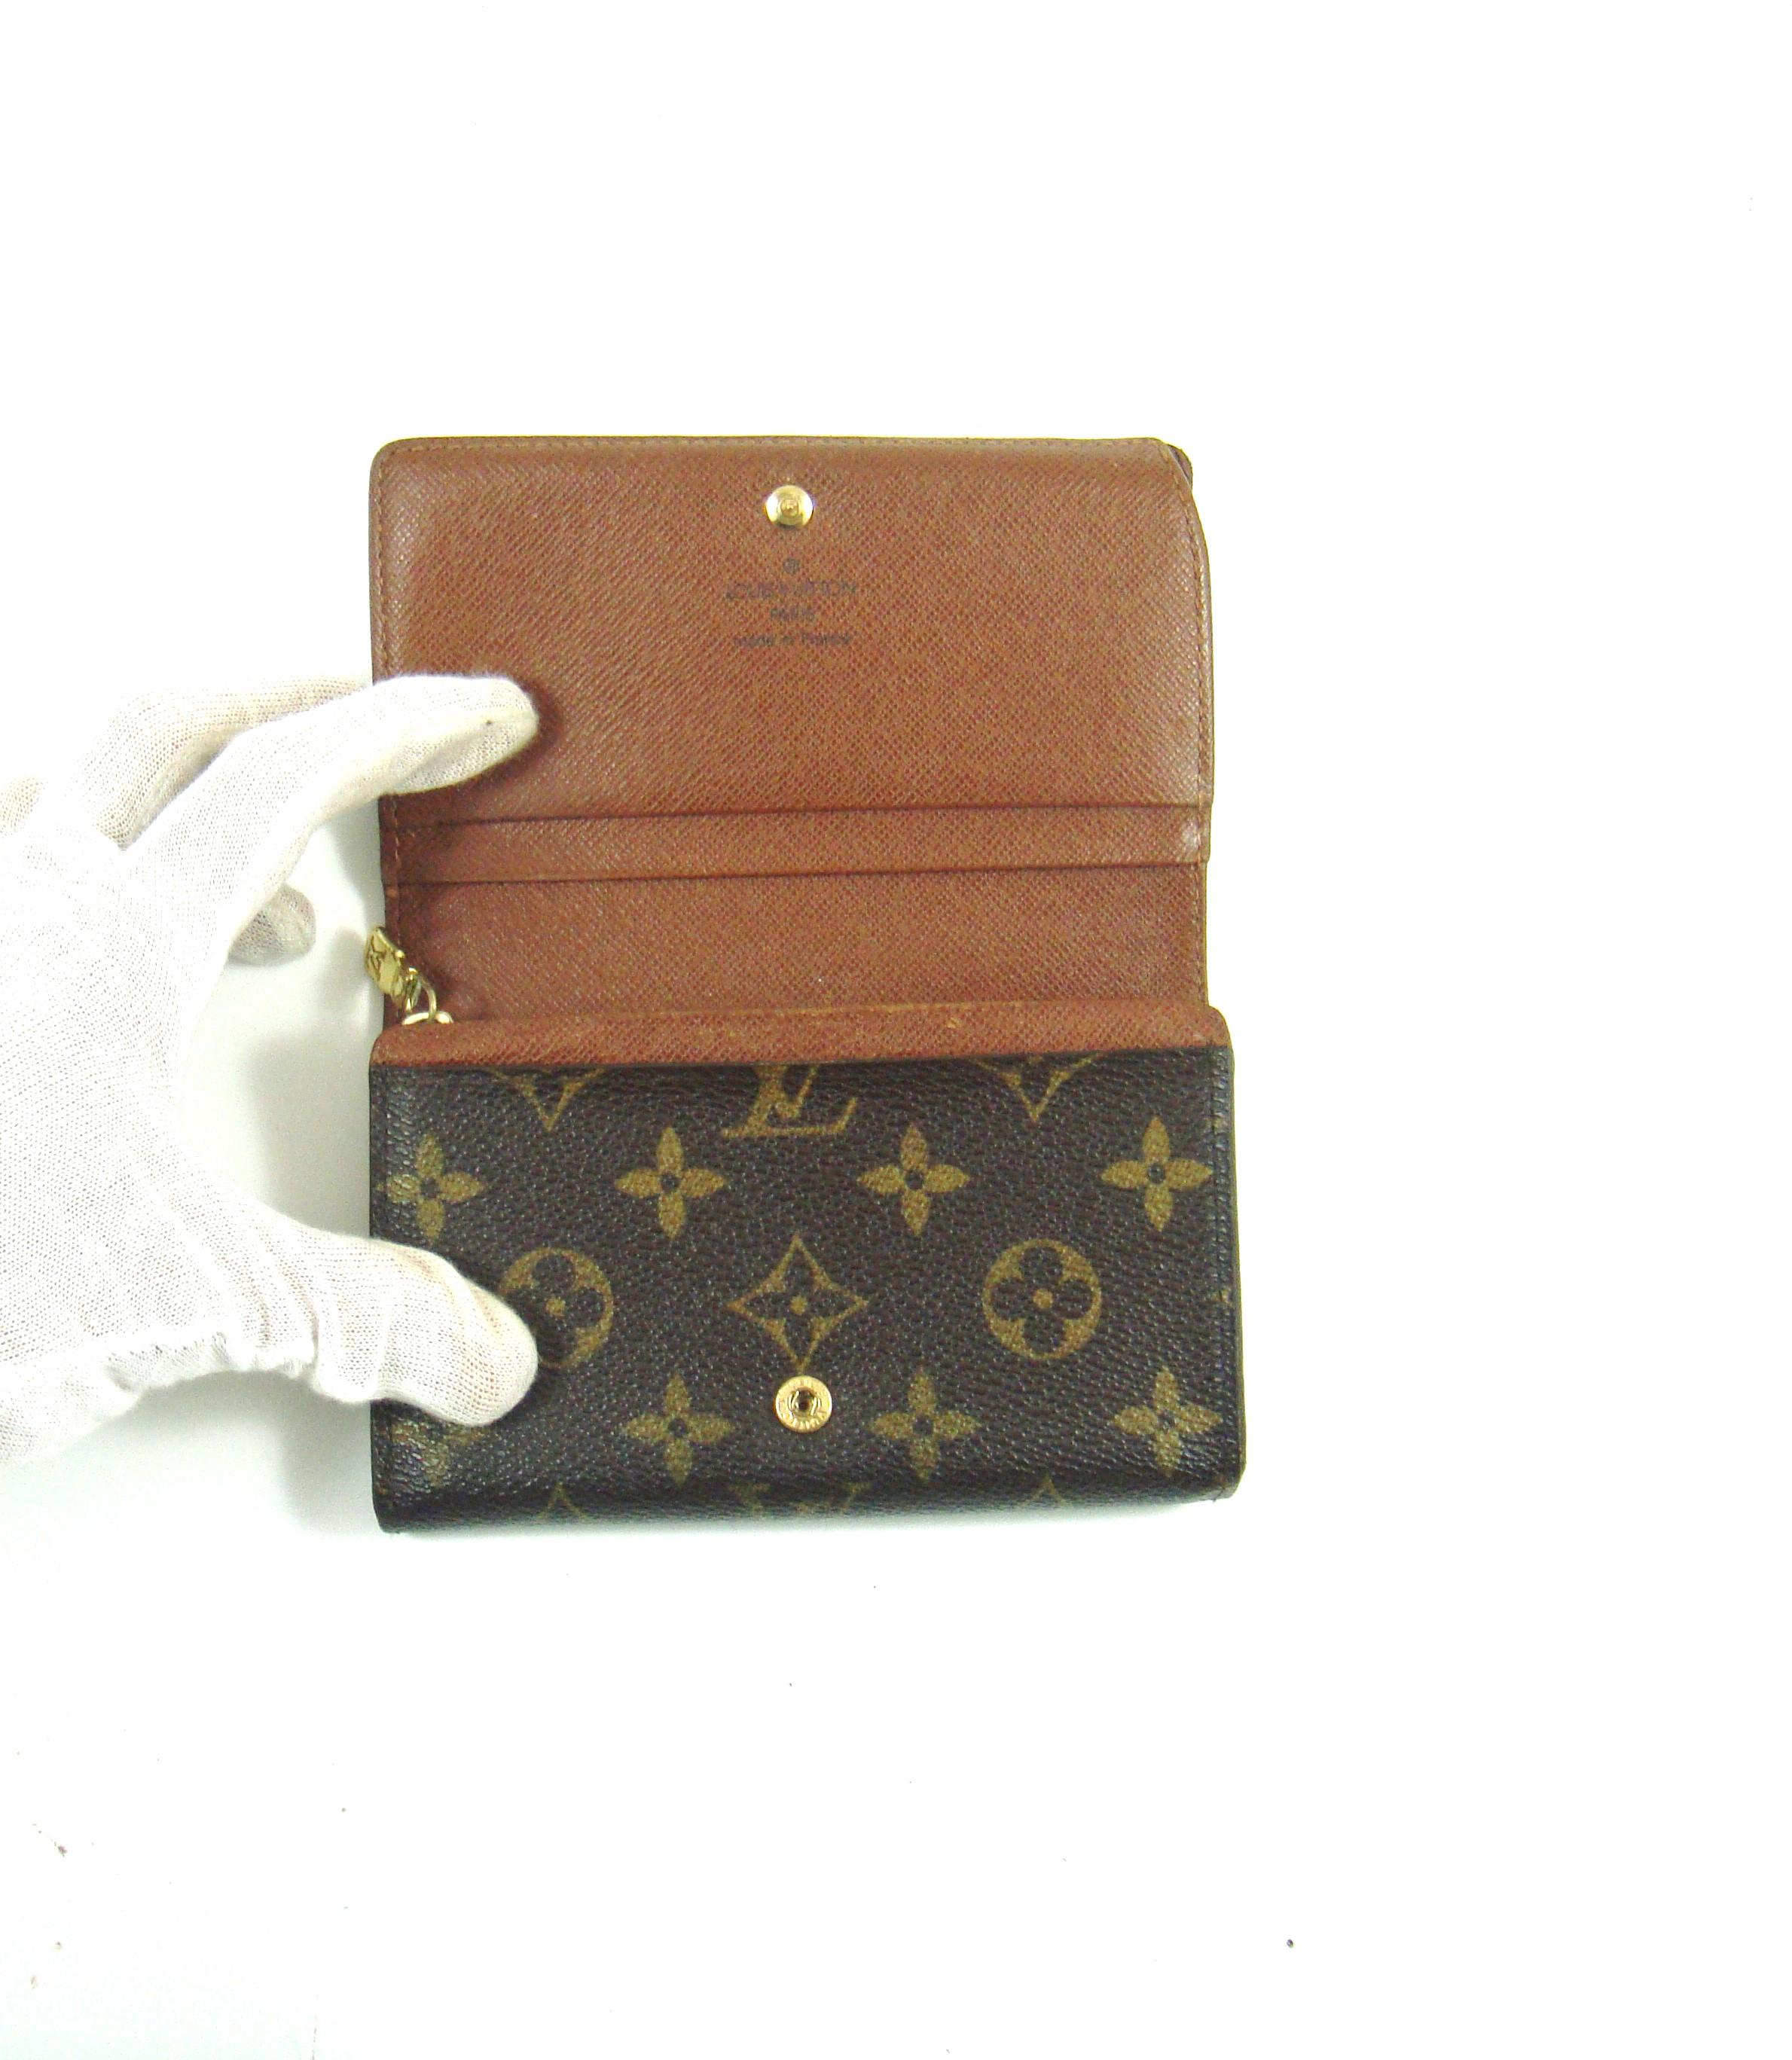 Le Meilleur Louis Vuitton Porte Monnaie Tresor Monogram Canvas Leather Ce Mois Ci